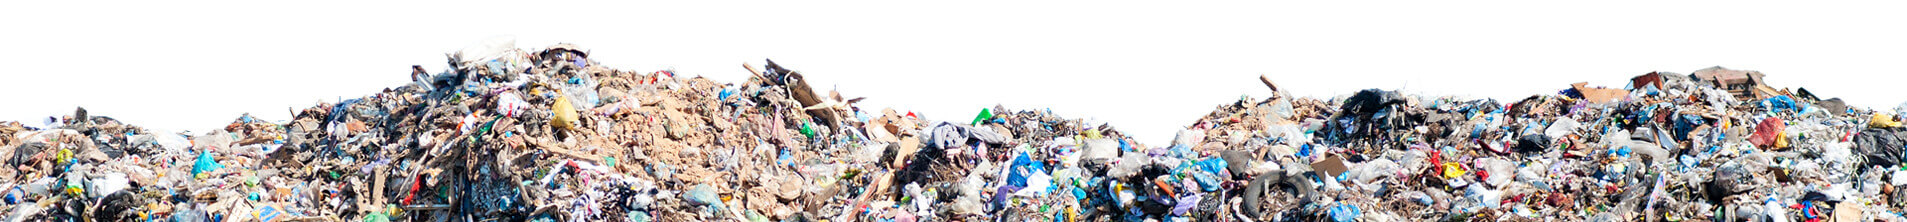 Trash pile at landfill with white background